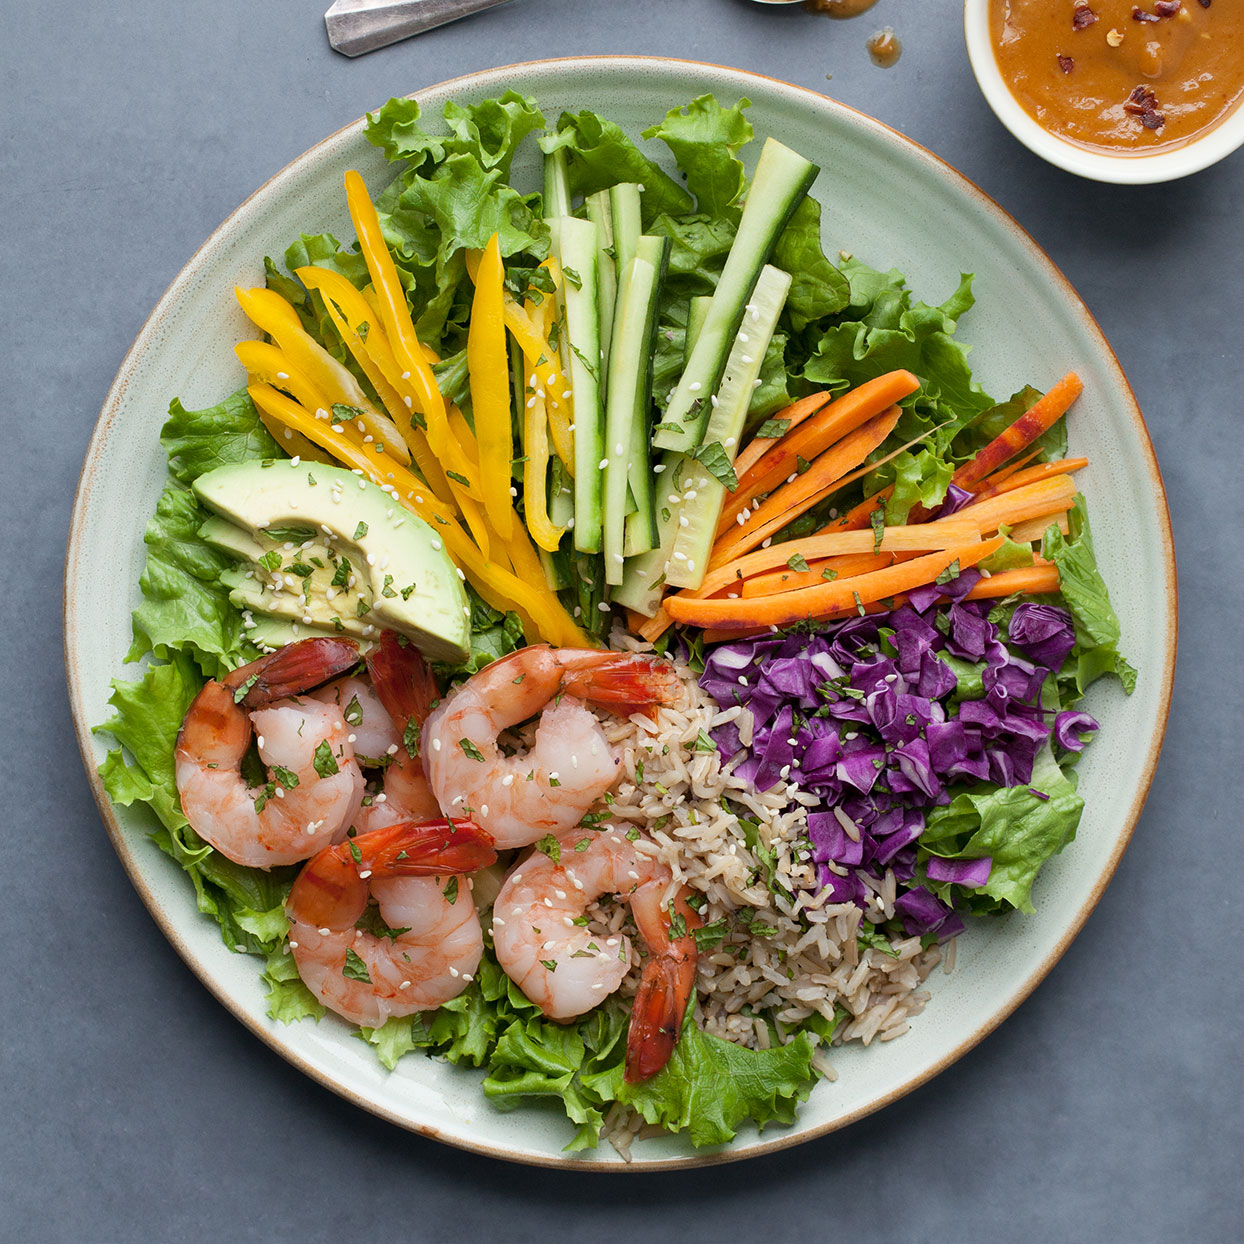 Spring Roll Salad Trusted Brands